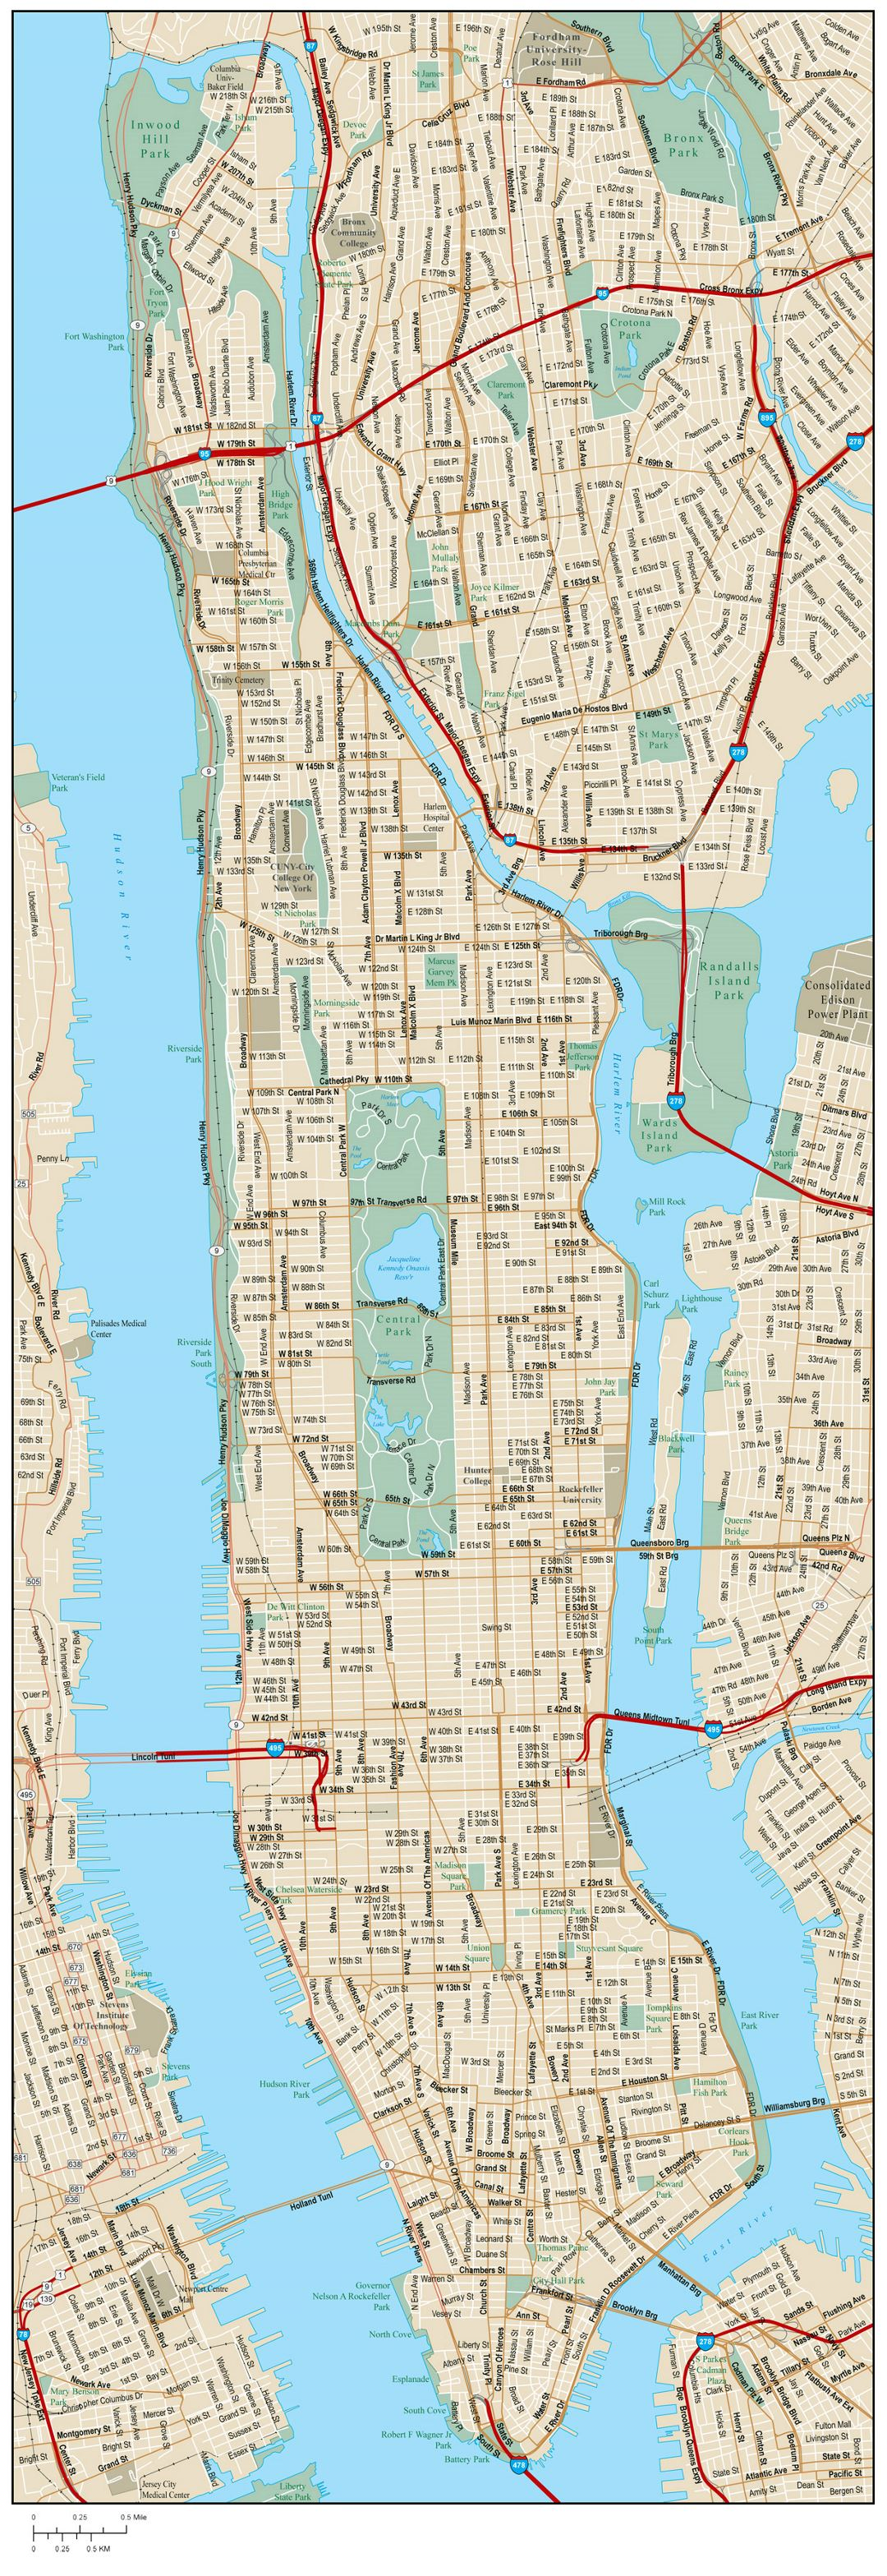 Large road map of Manhattan with street names